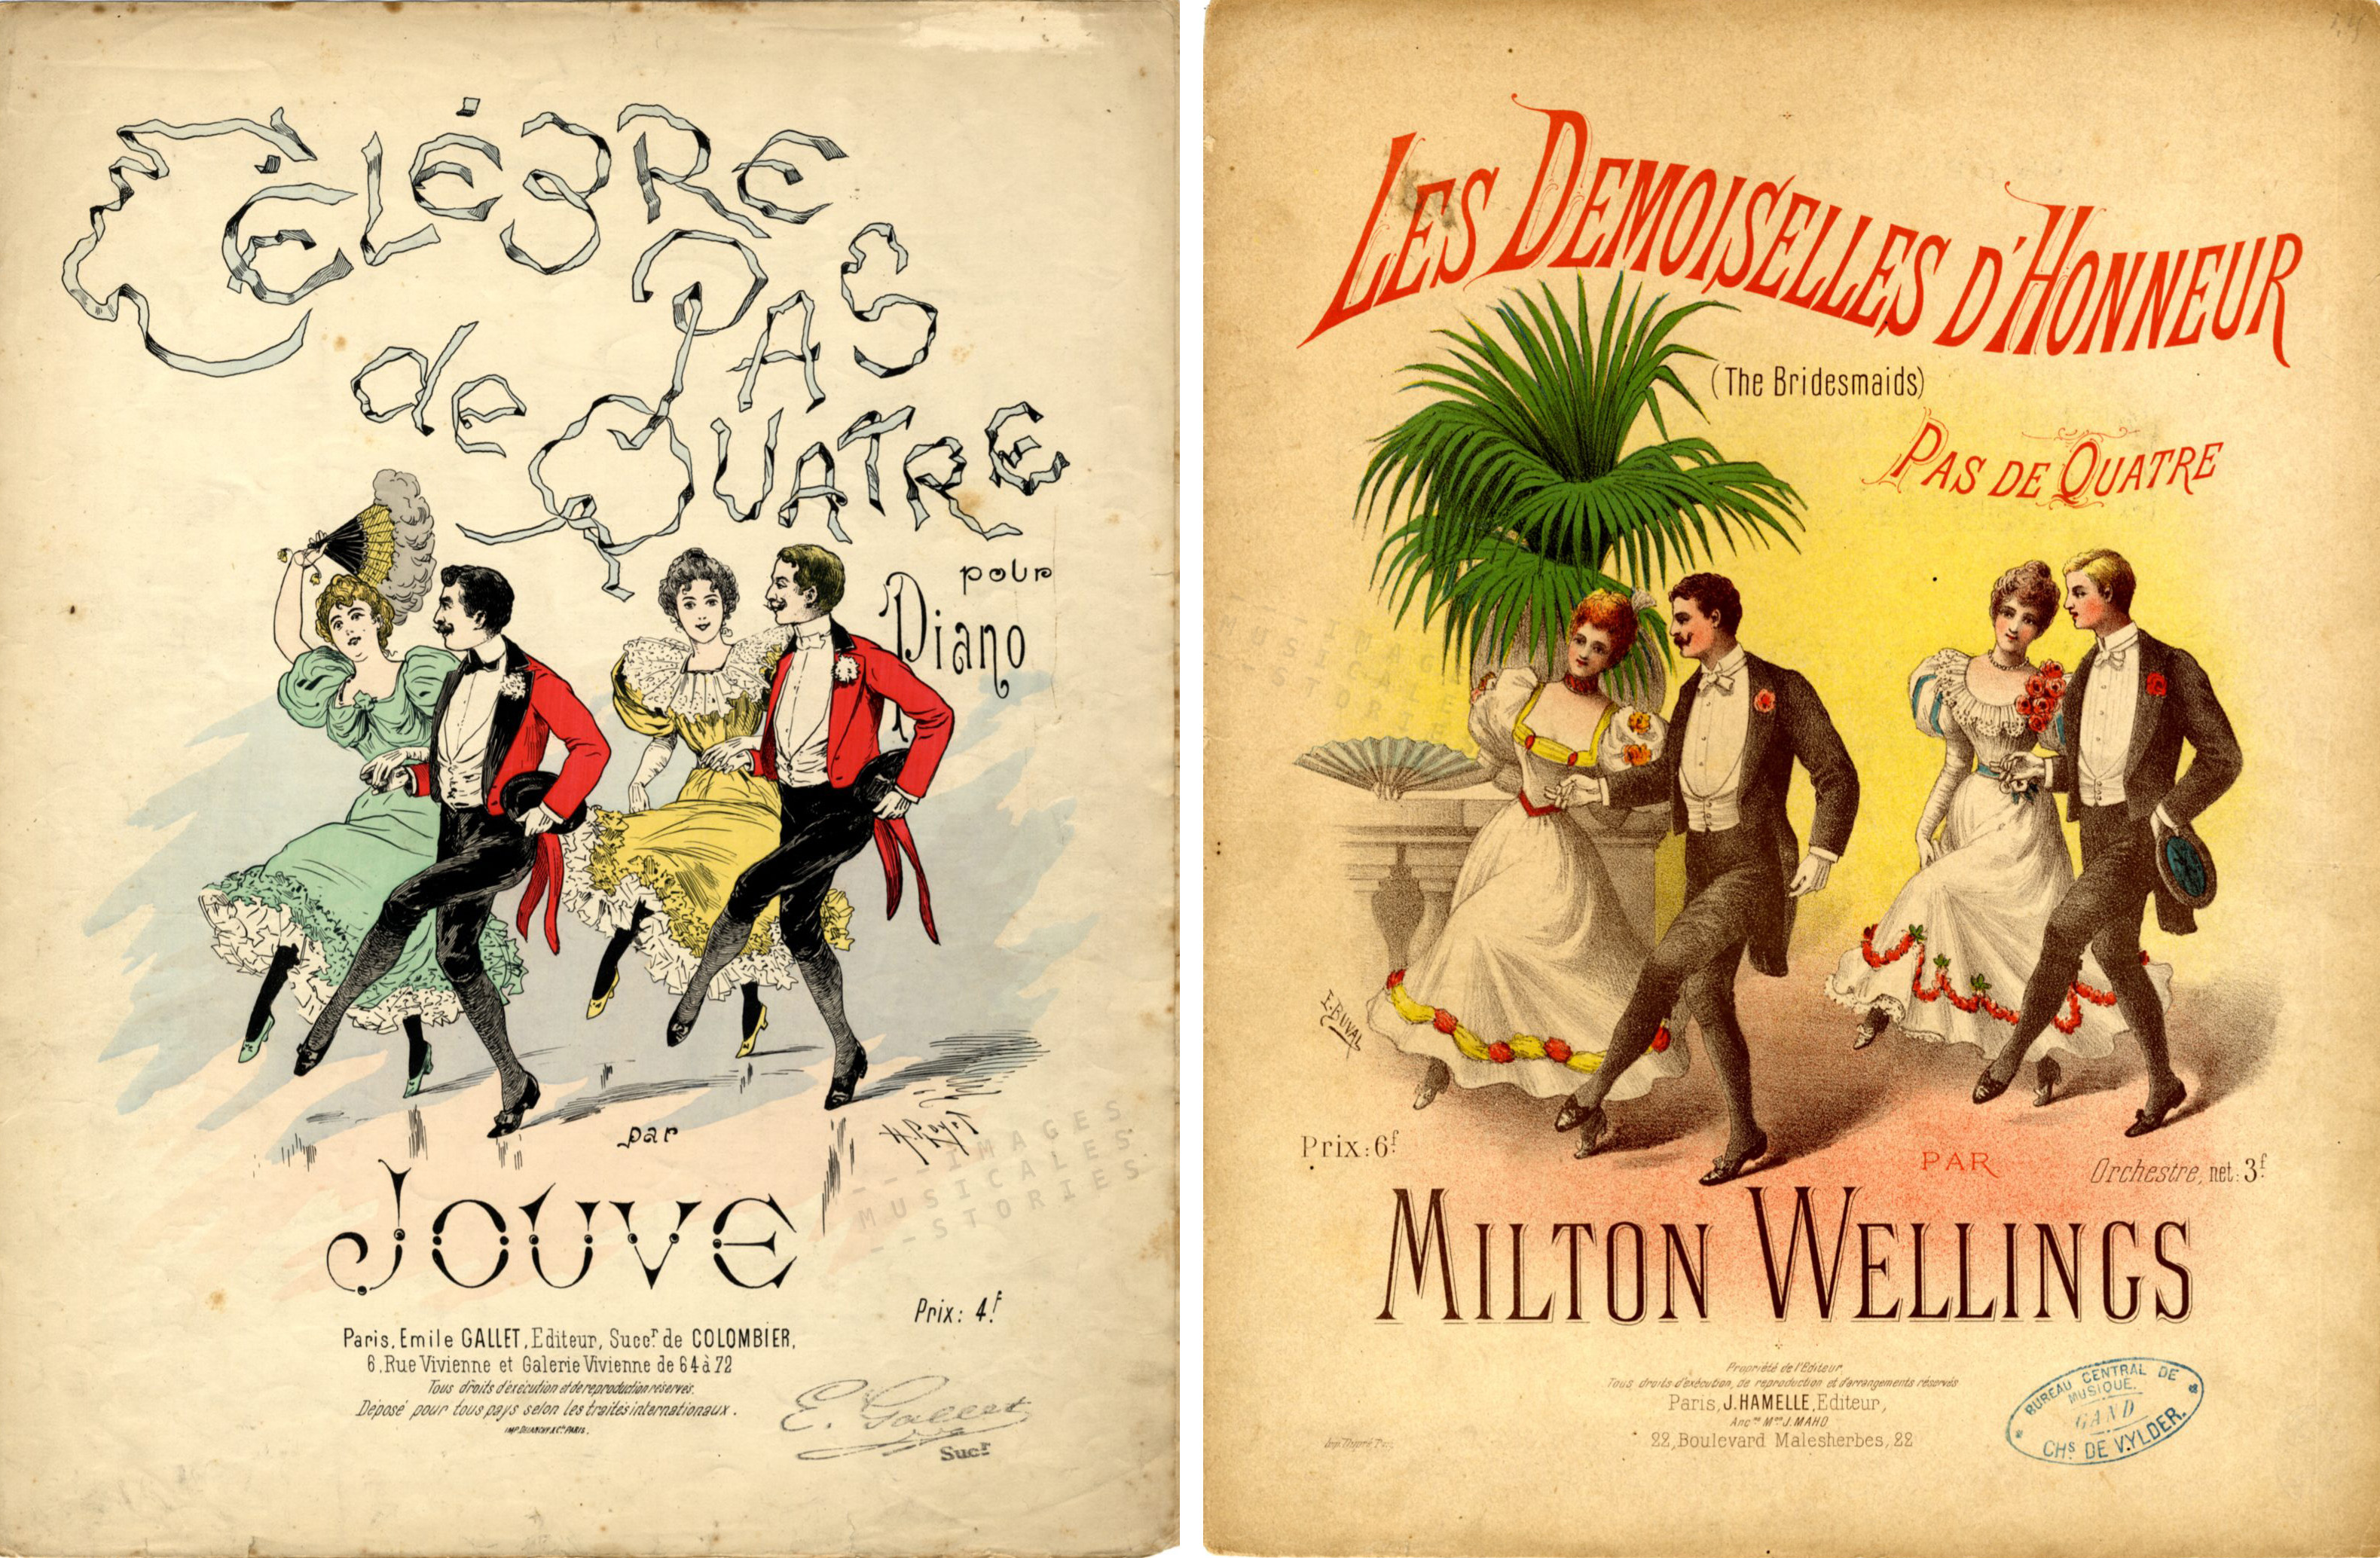 'Pas de Quatre' sheet music covers from www.imagesmusicales.be